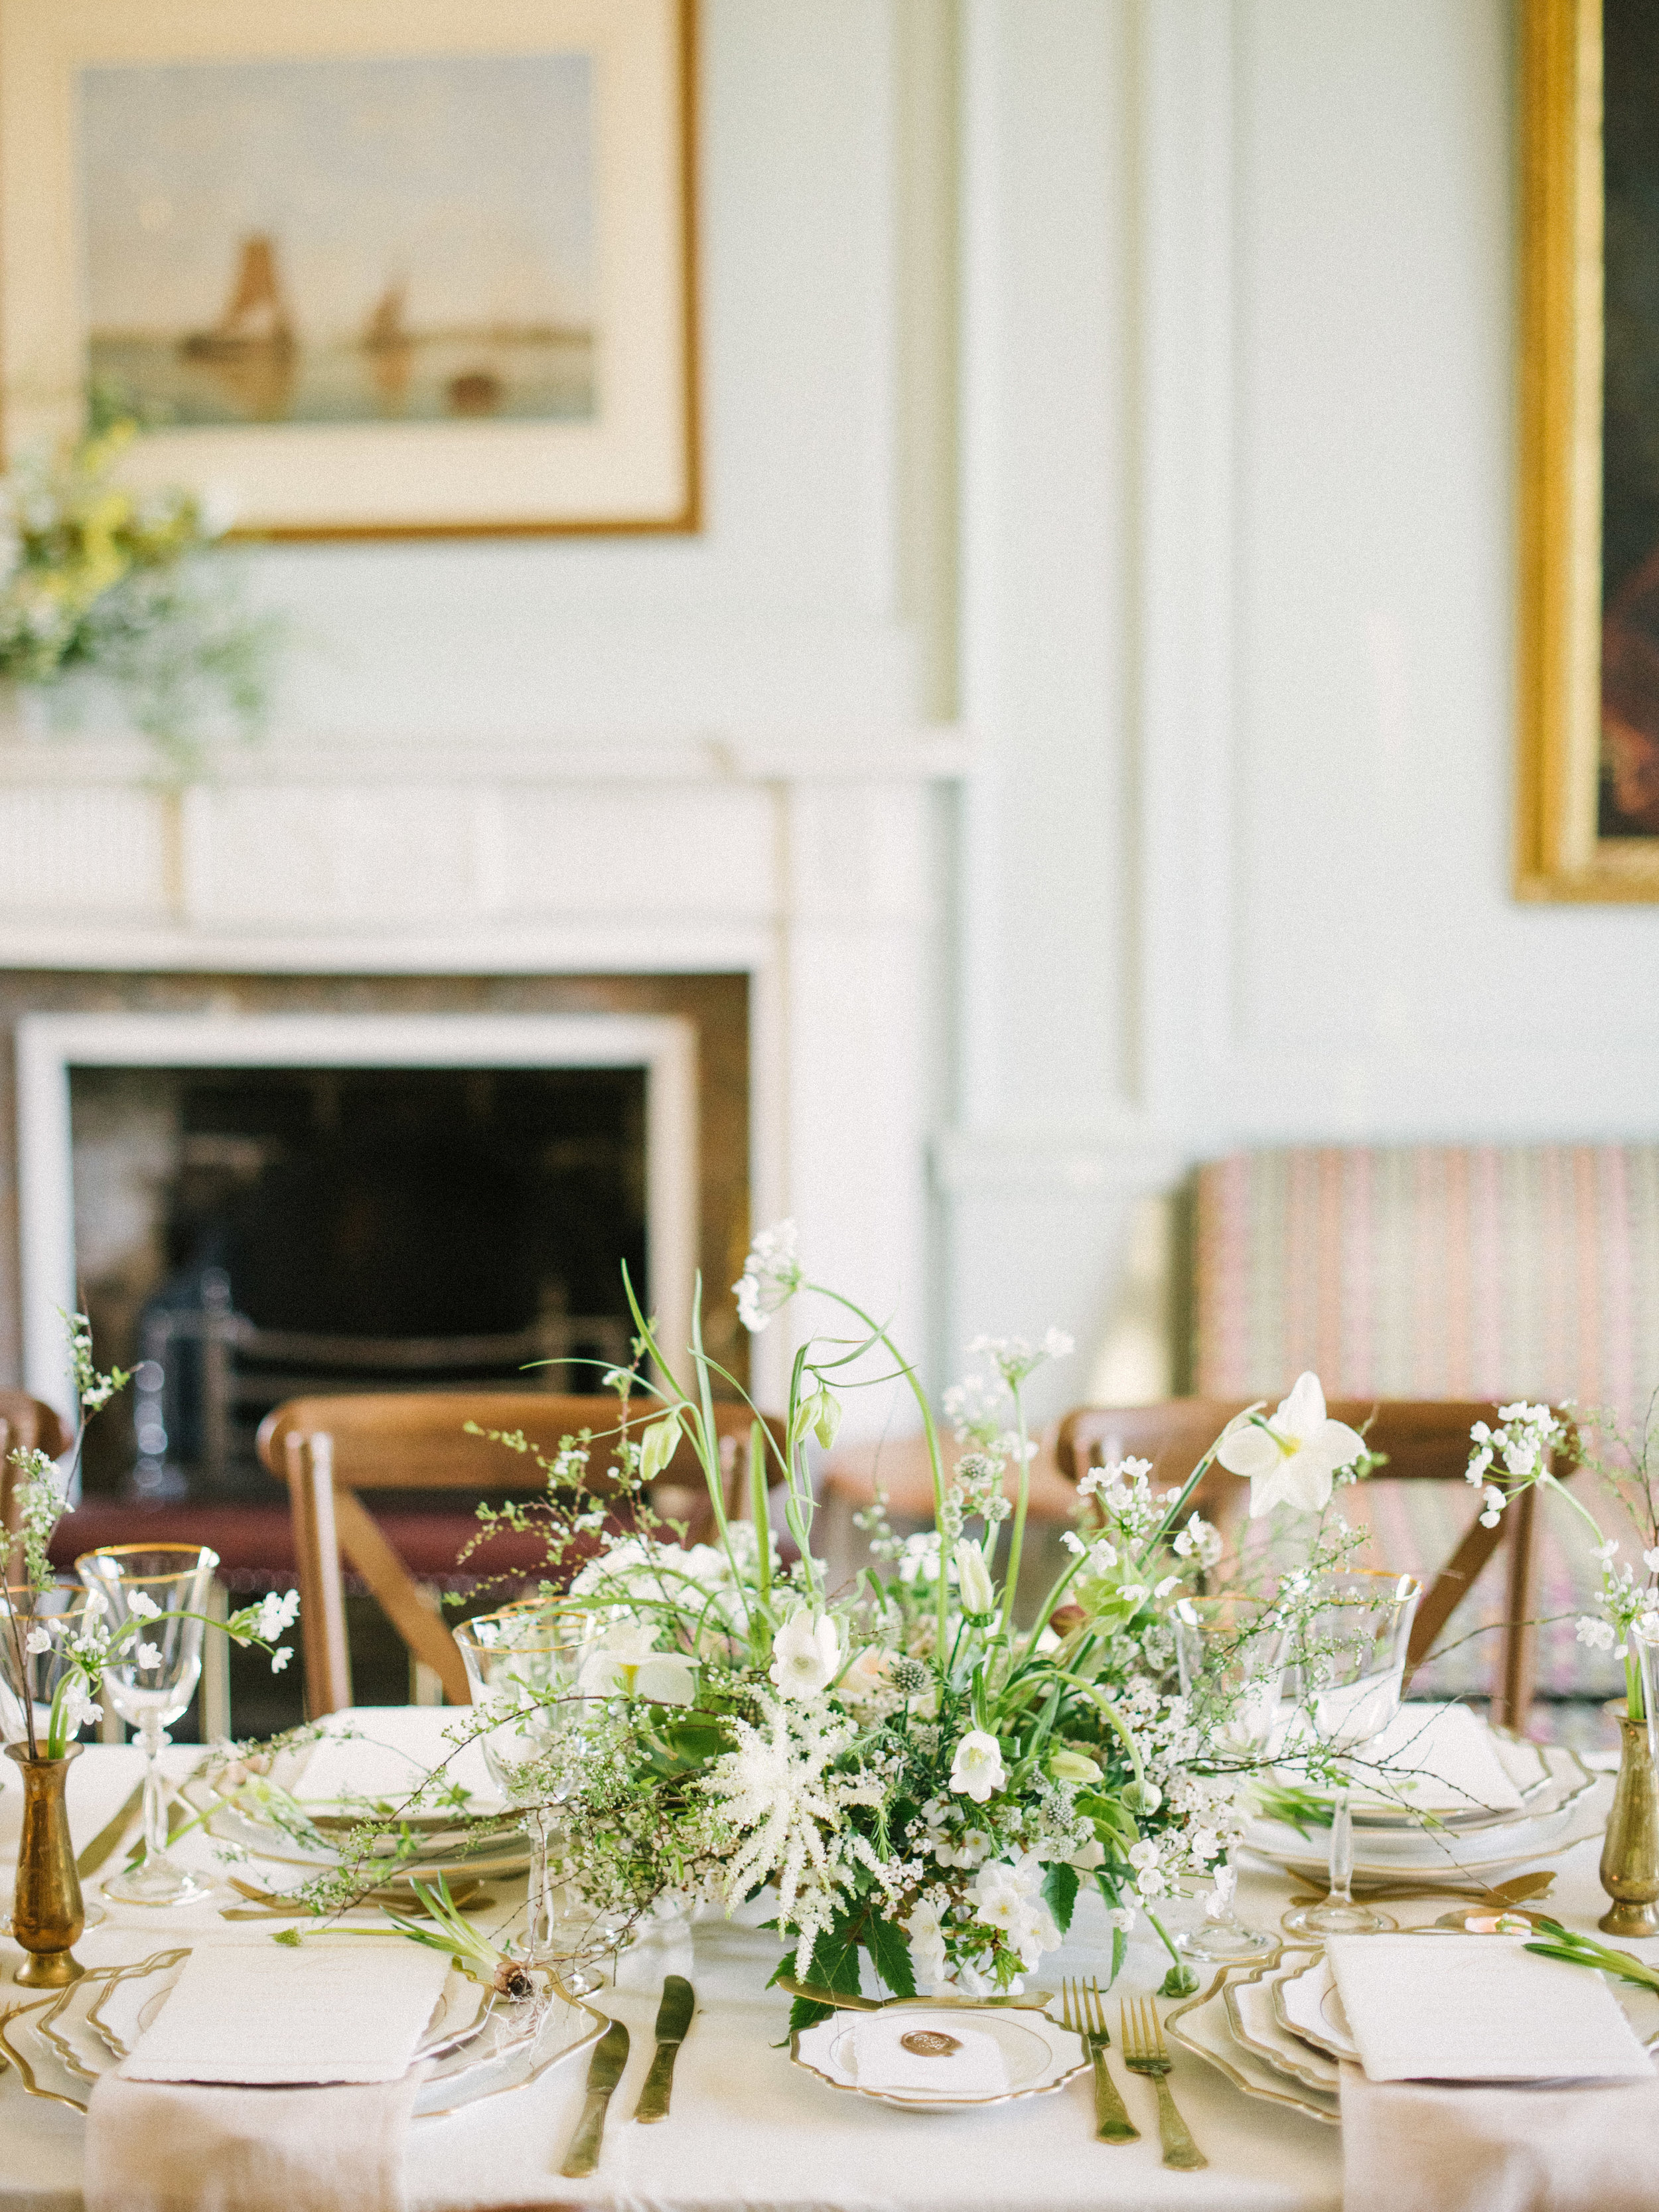 The Timeless Stylist-Spring Wedding Tablescape at Bocnnoc Stately Home Wedding Venue